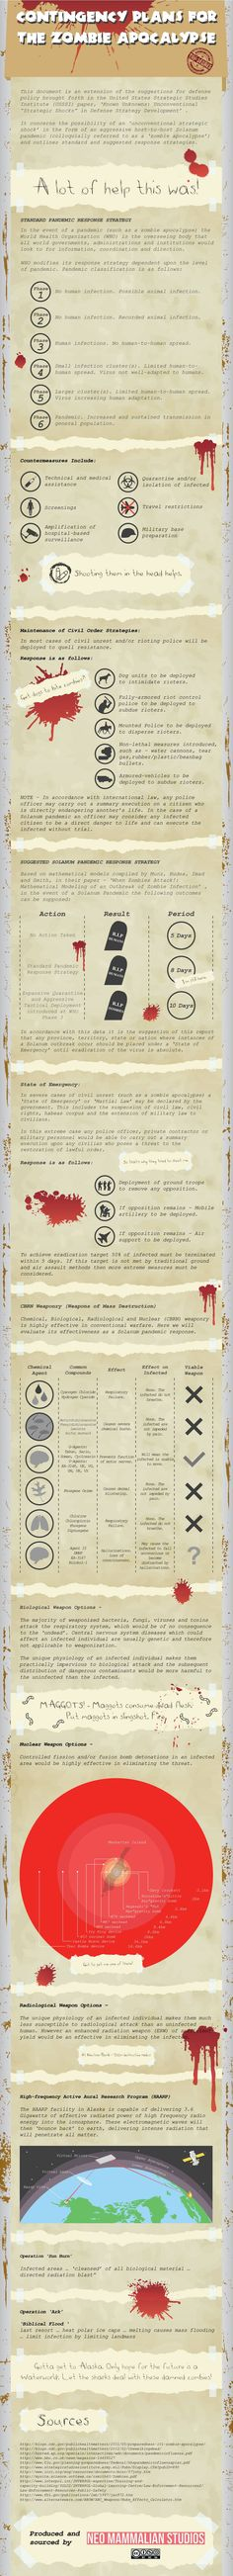 Contigency plans for Zombie Apocalipse (Just in case)